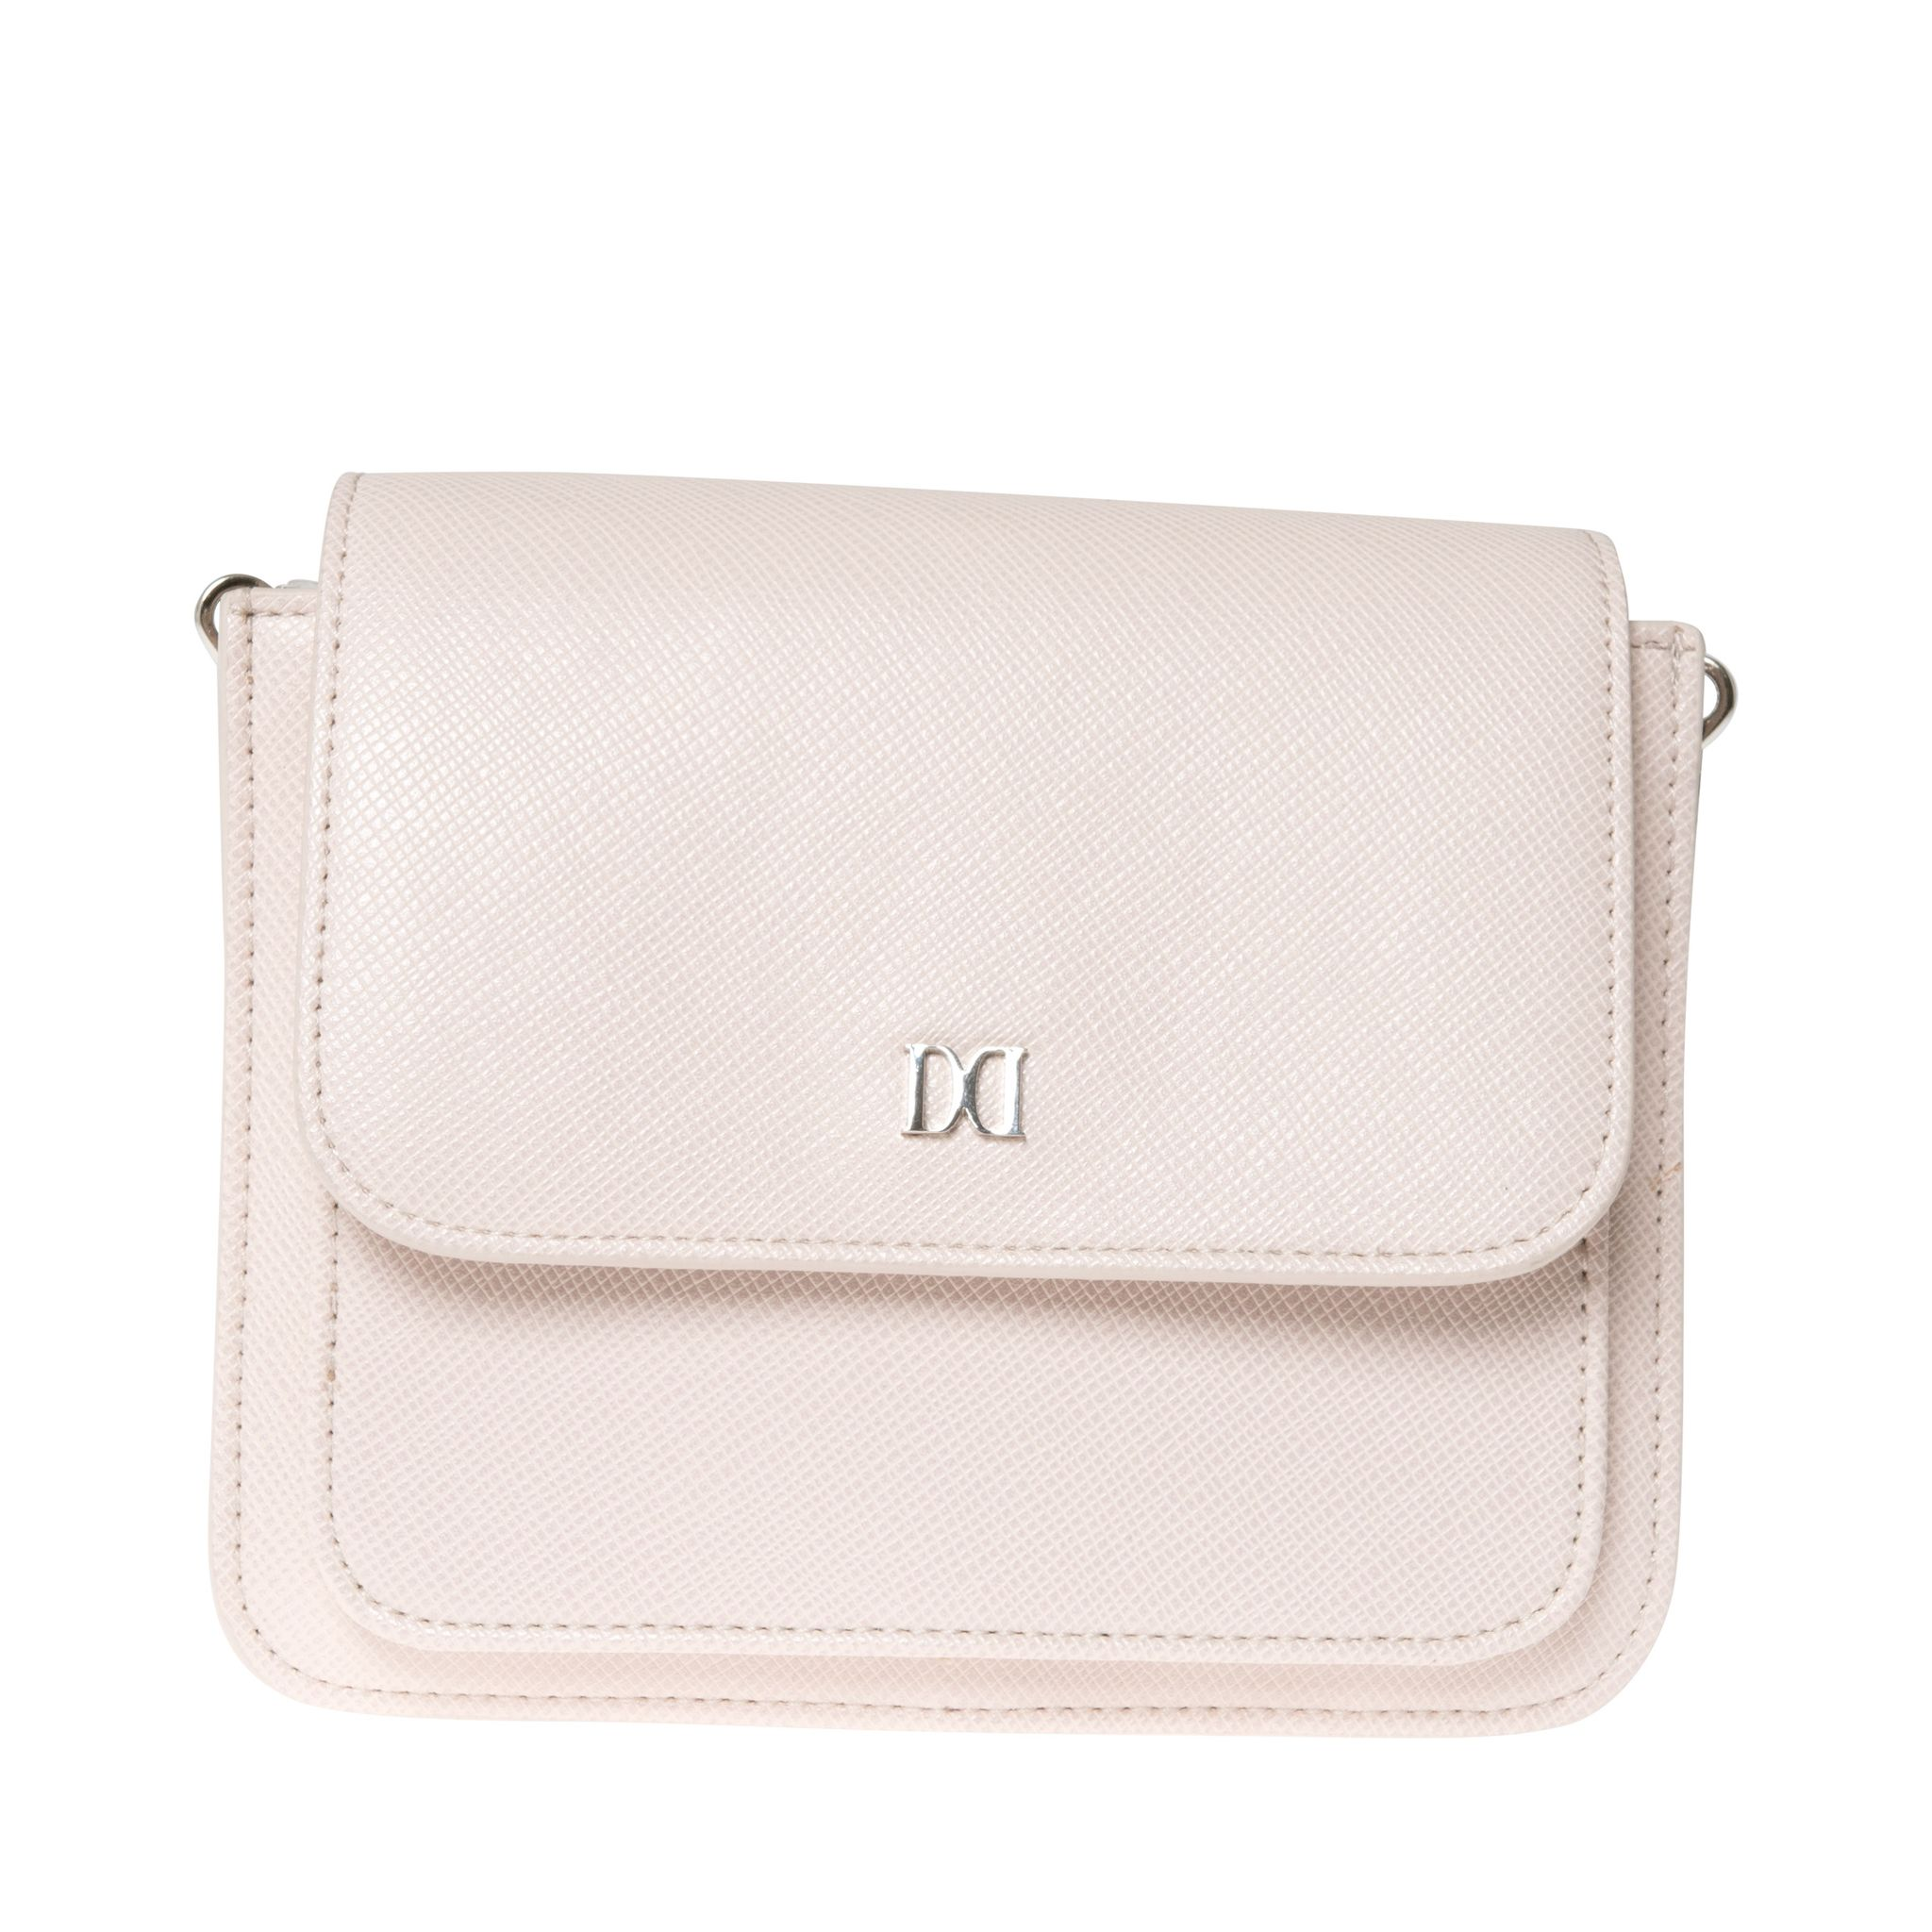 DON DONNA BELLA CROSSBODY